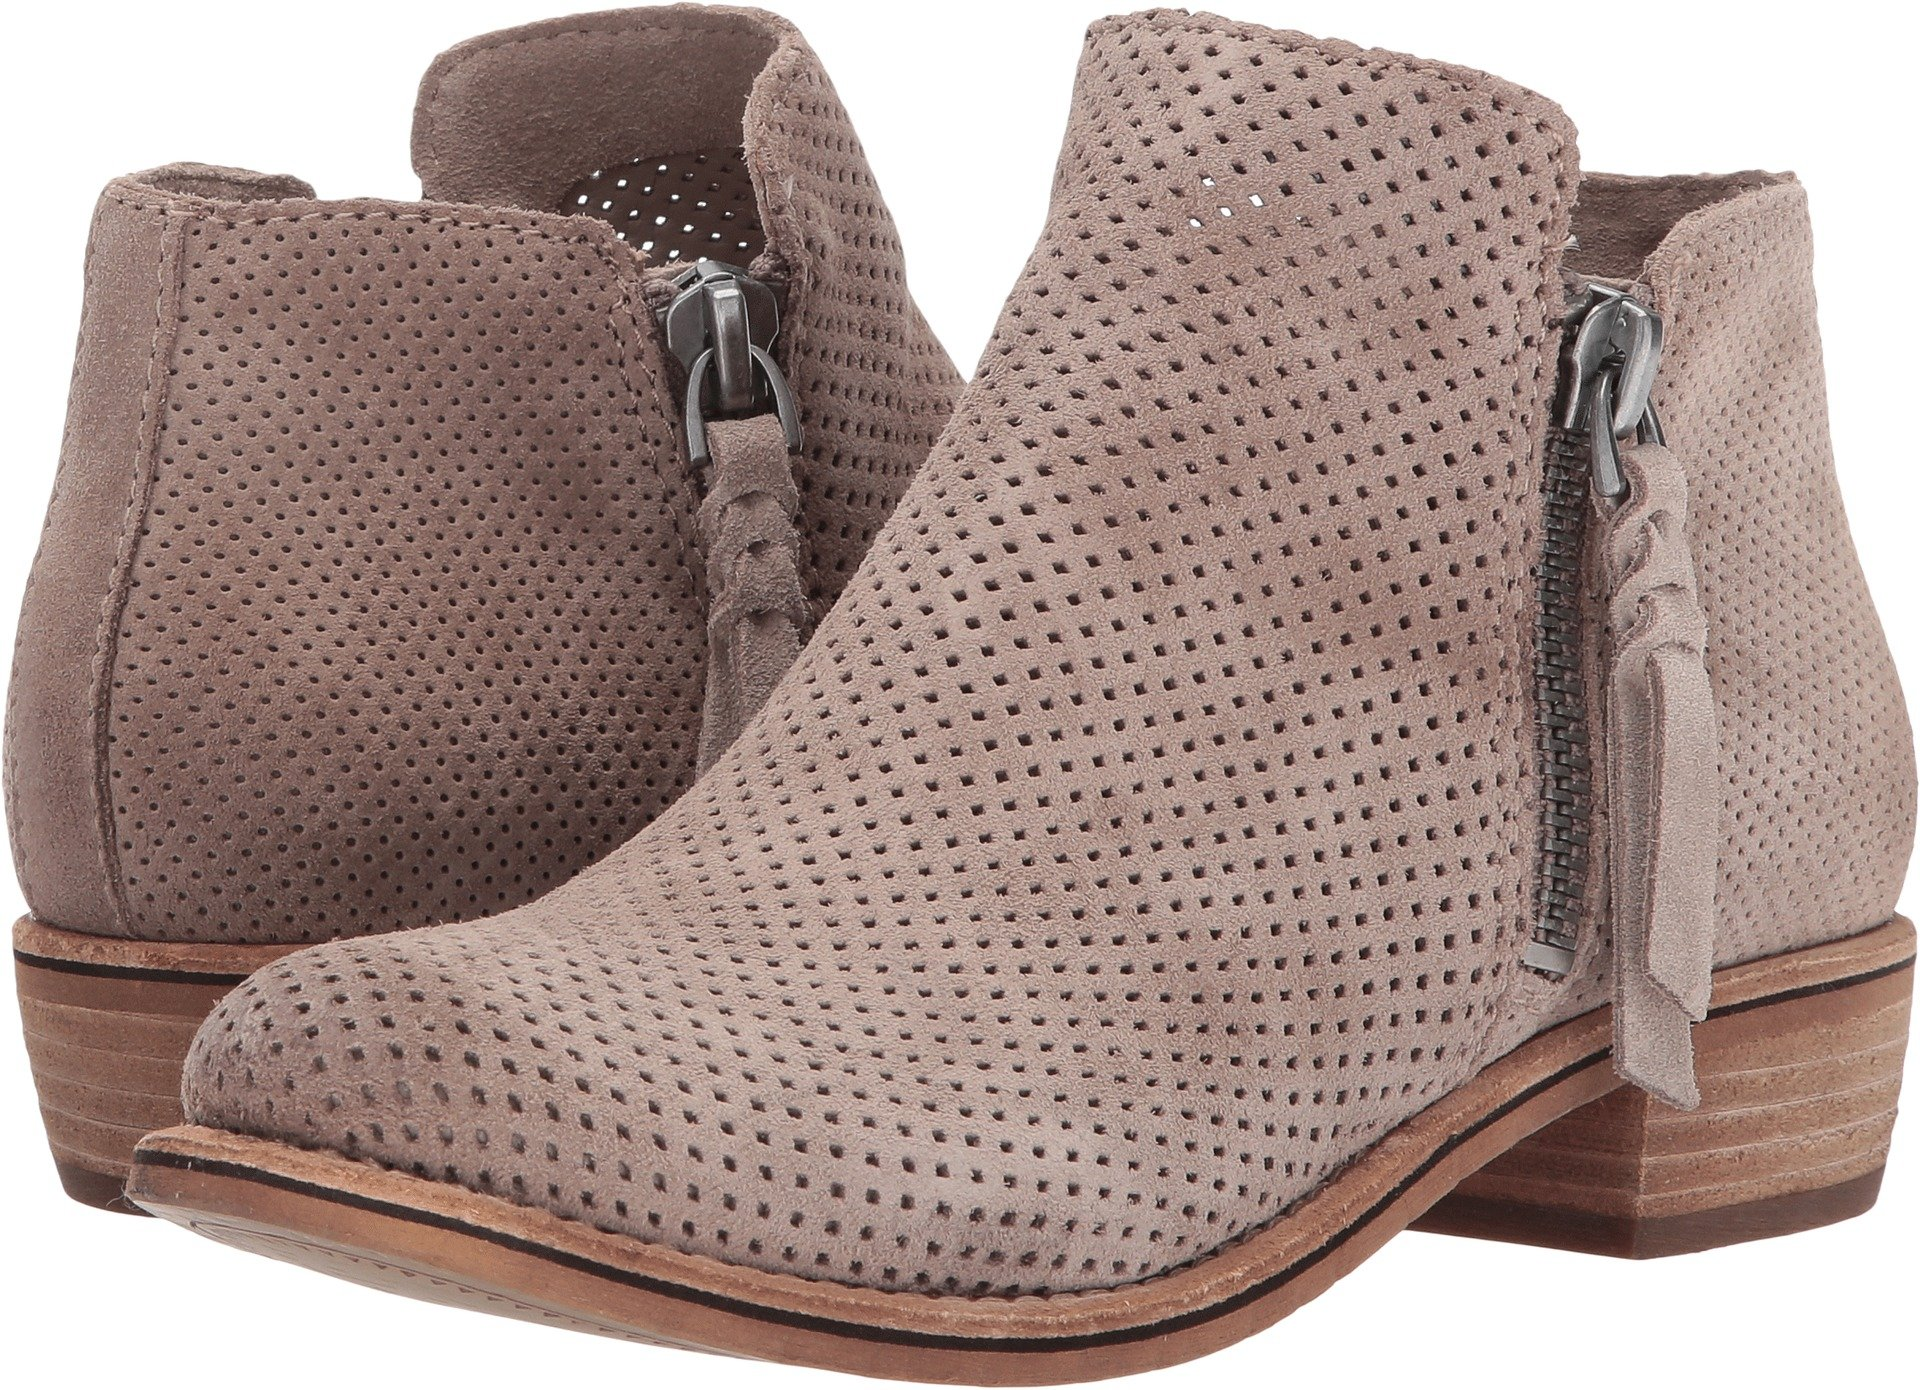 Dolce Vita Women's Sevi Ankle Boot, Taupe Suede, 6 Medium US